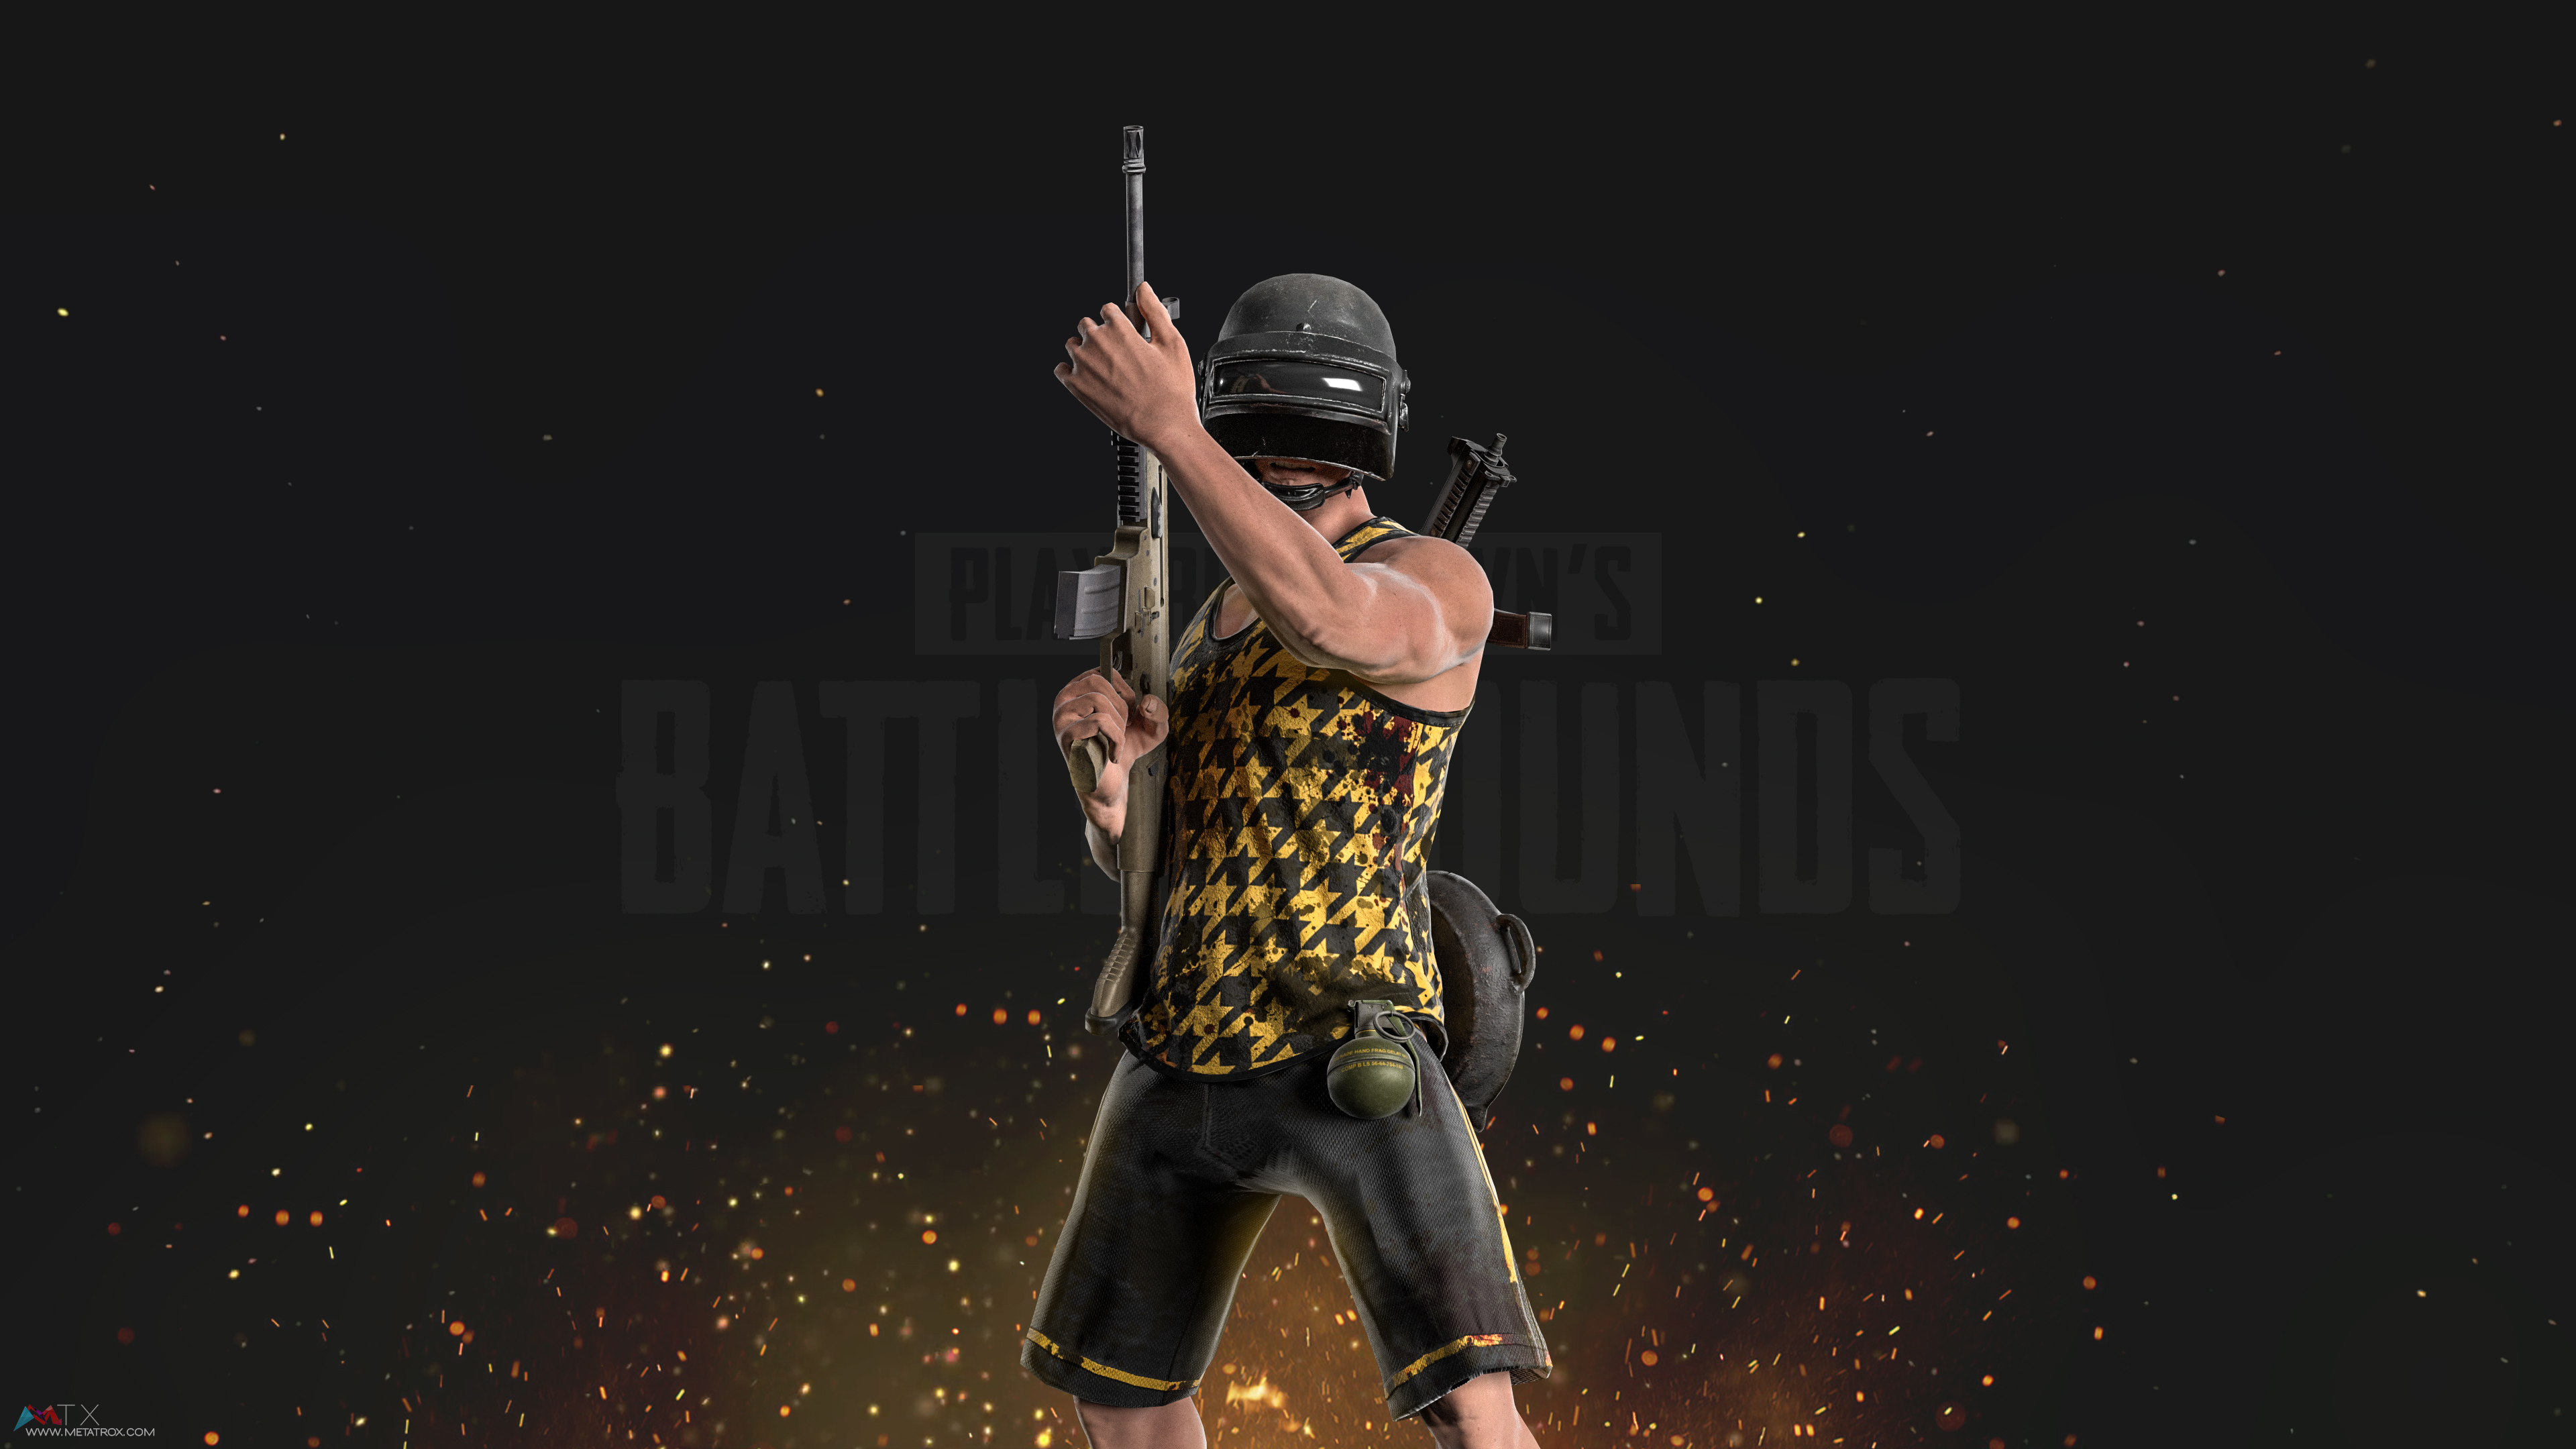 Pubg Lite Wallpaper Hd: Pubg, HD Games, 4k Wallpapers, Images, Backgrounds, Photos